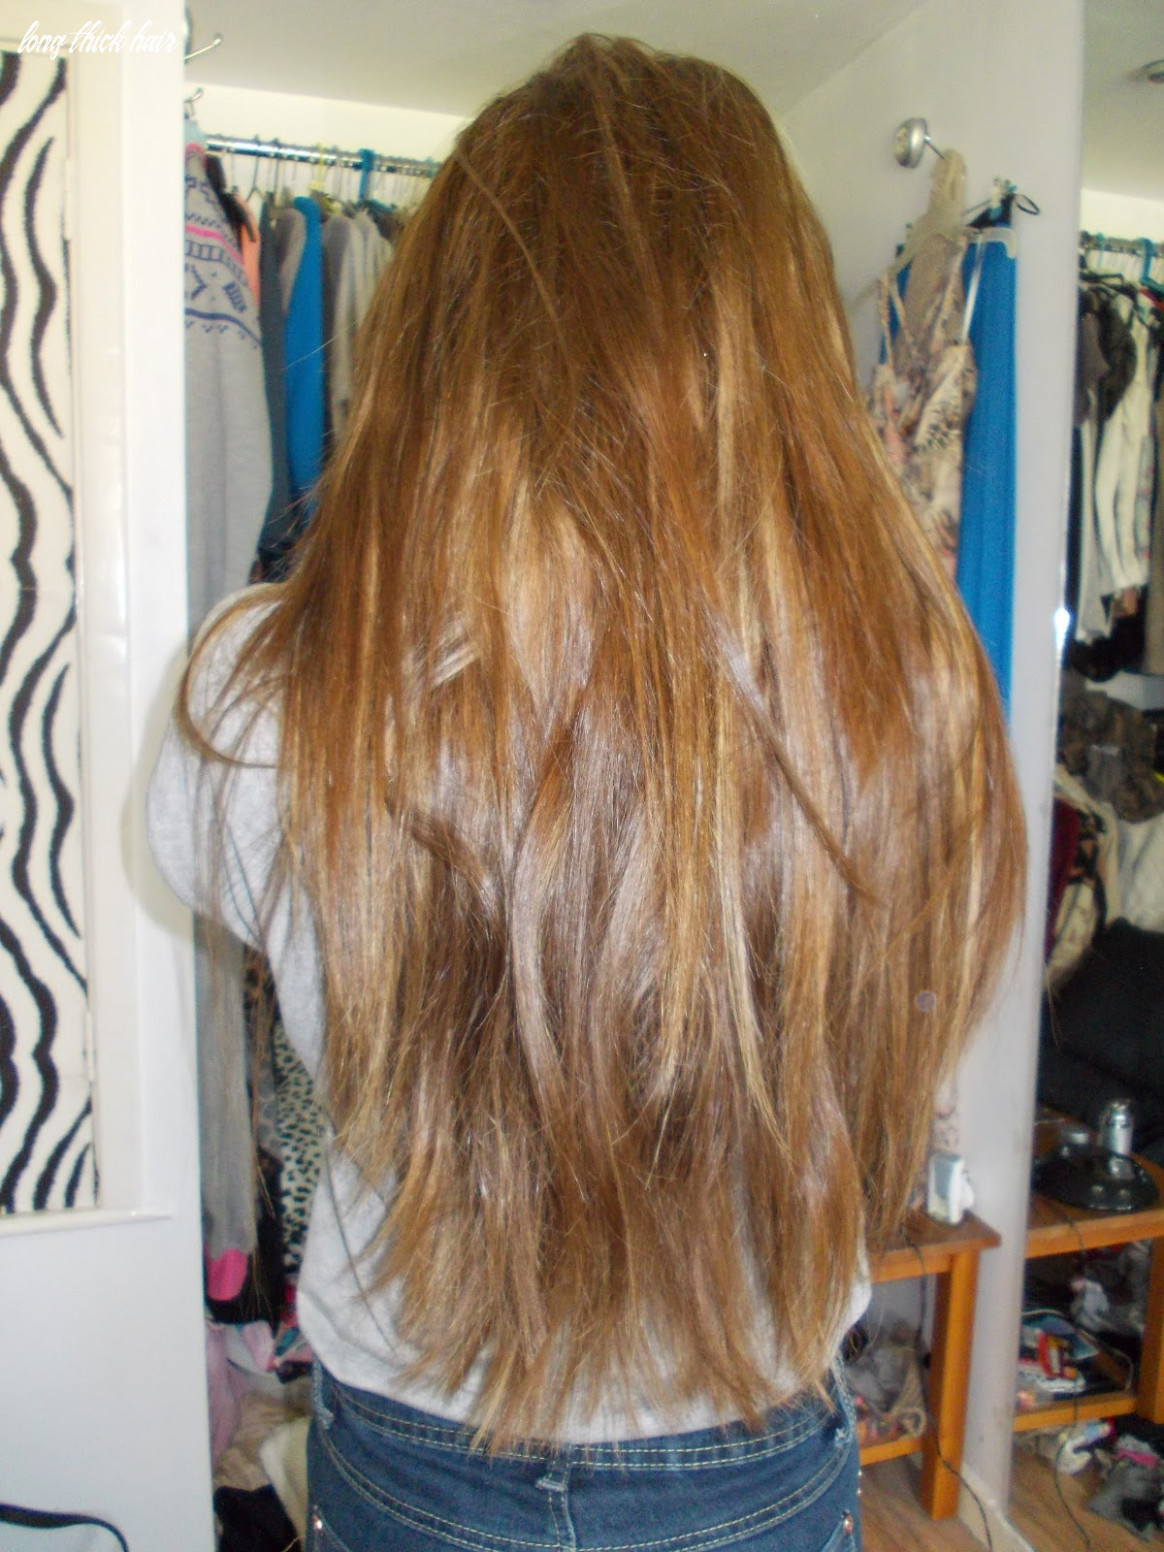 Her heart is in paris: how to: volumise long, thick hair long thick hair